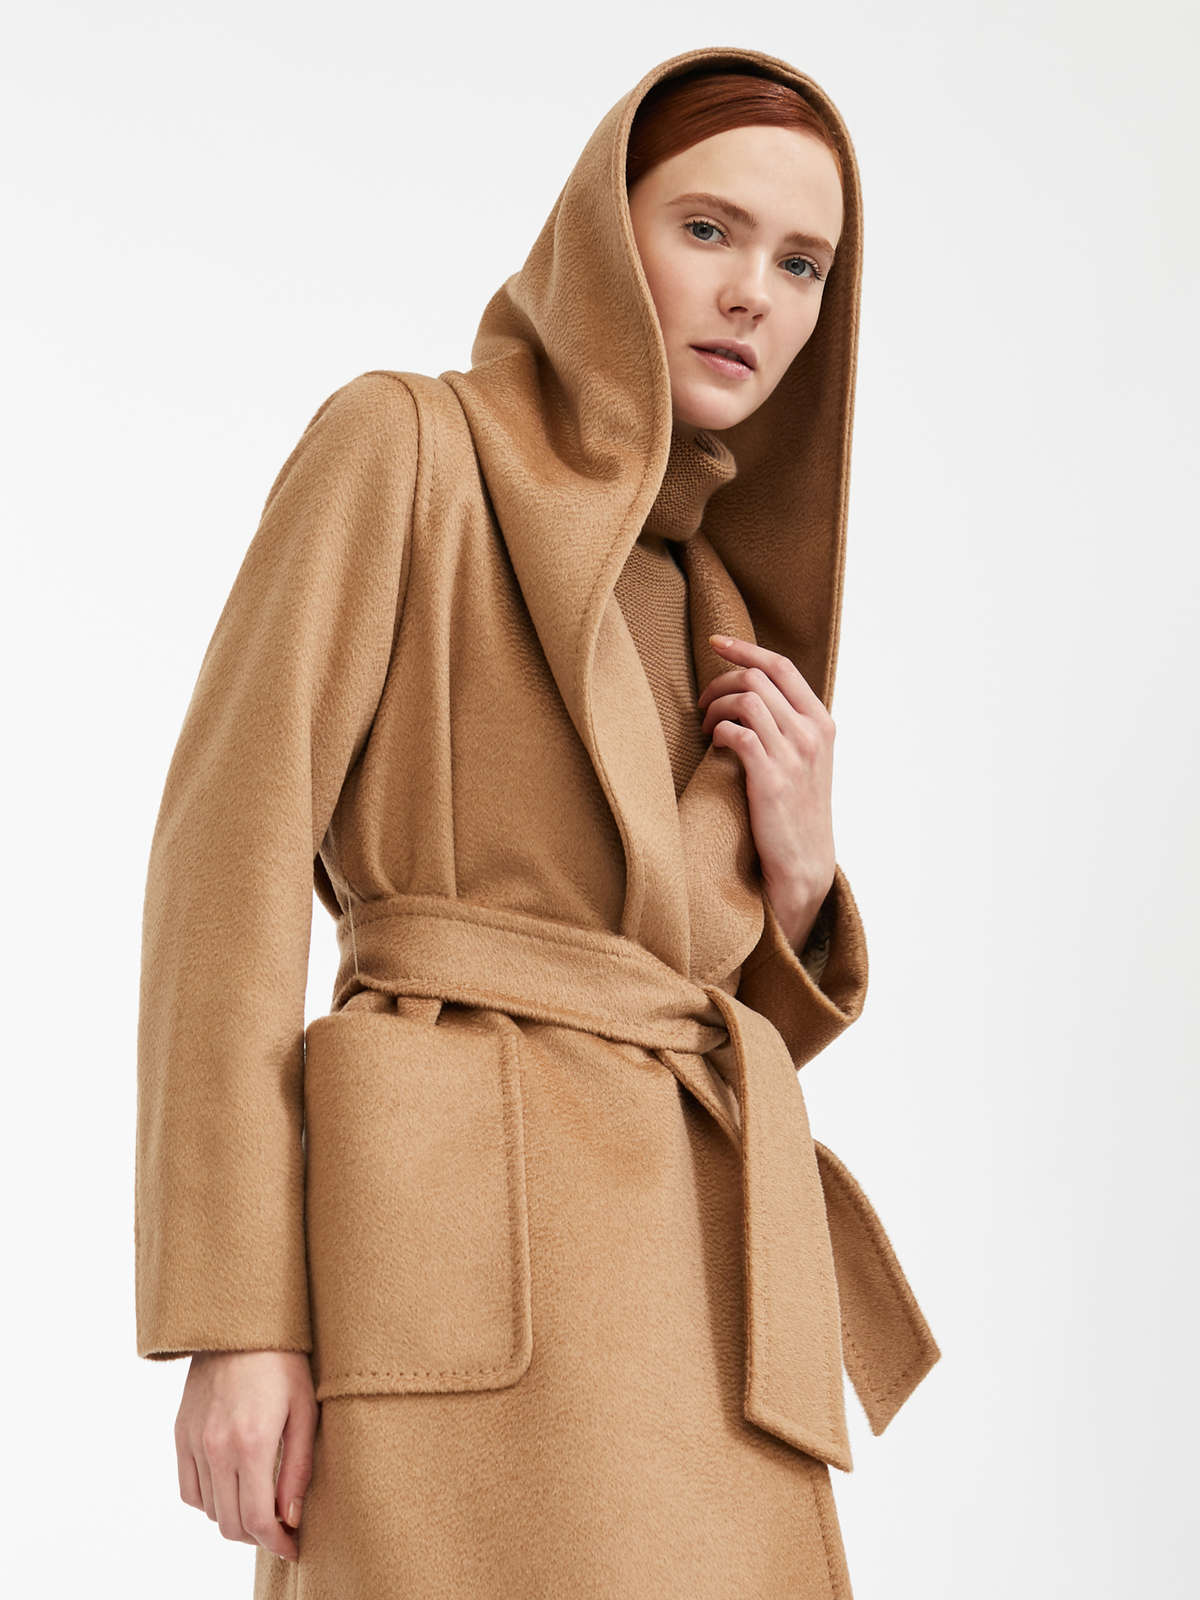 ad9fd676699 Camelhair coat